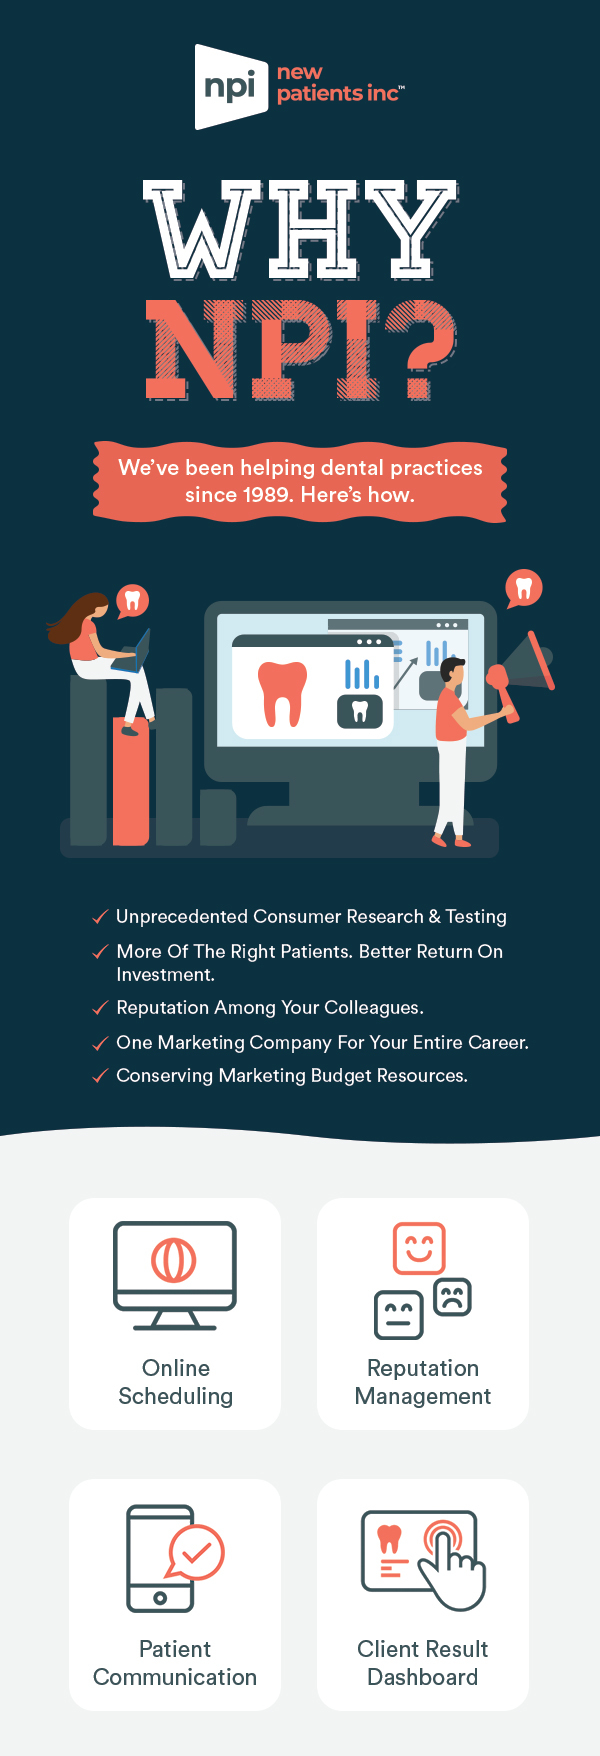 Get Online & Offline Dental Marketing Services from New Patients Inc